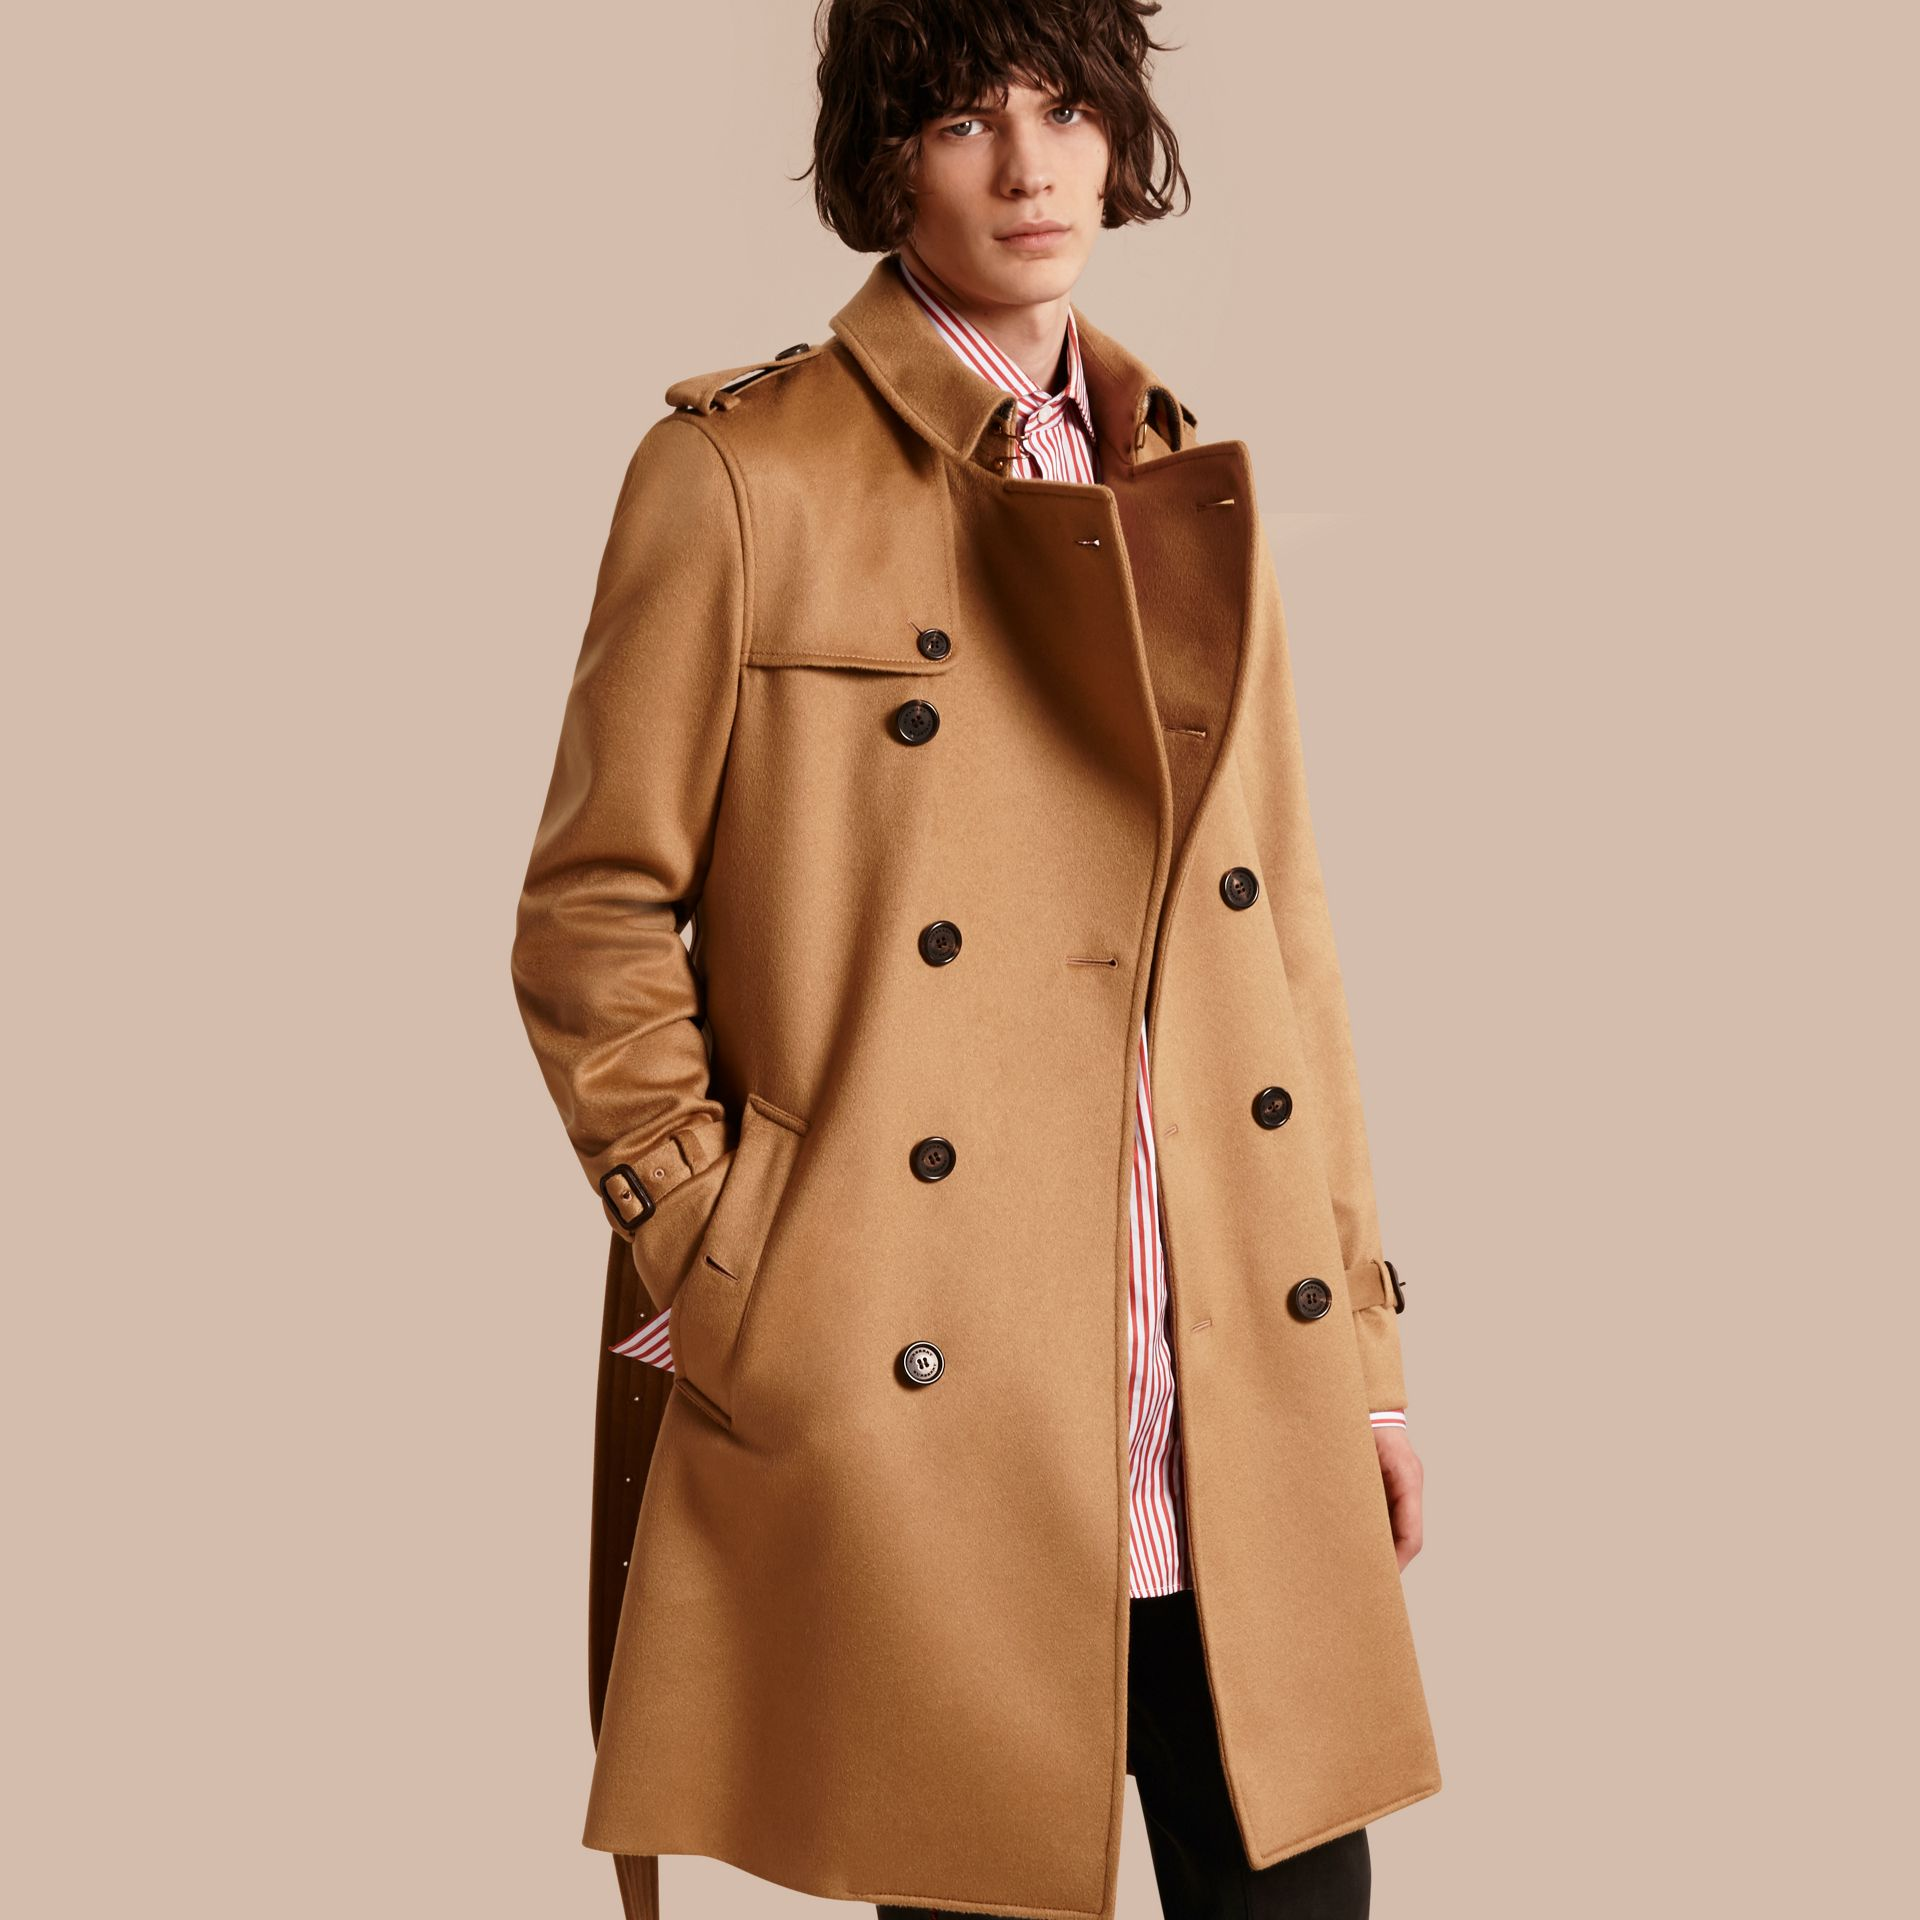 Cashmere Trench Coat in Dark Camel - Men | Burberry United States - gallery image 1